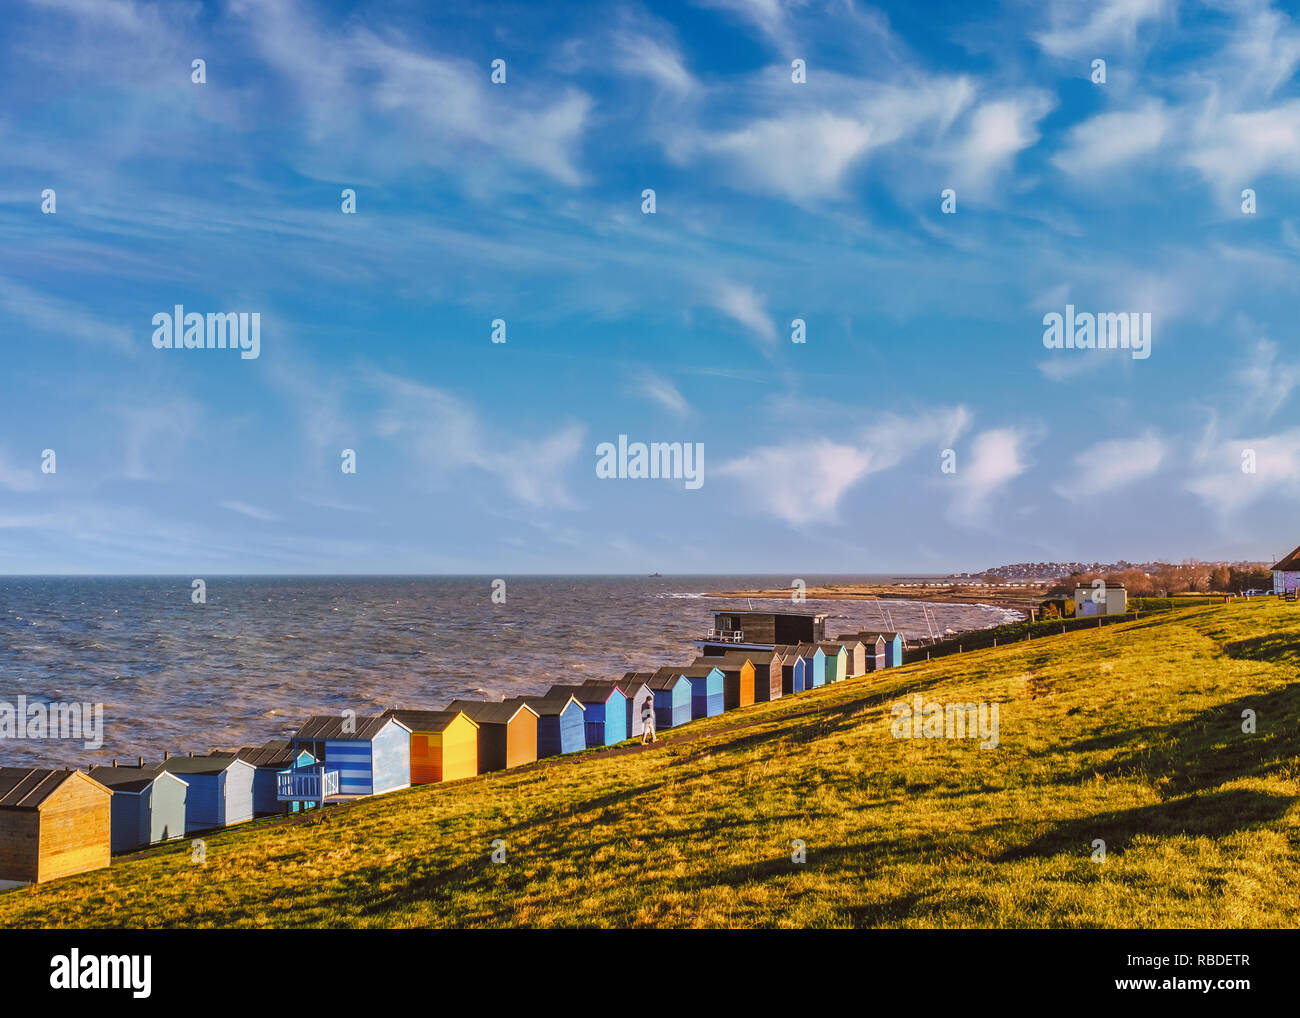 Row of beach huts along the coast in Tankerton, Whitstable, Kent. The green grass slopes are behind the huts and a man strolling along the grass. The  Stock Photo